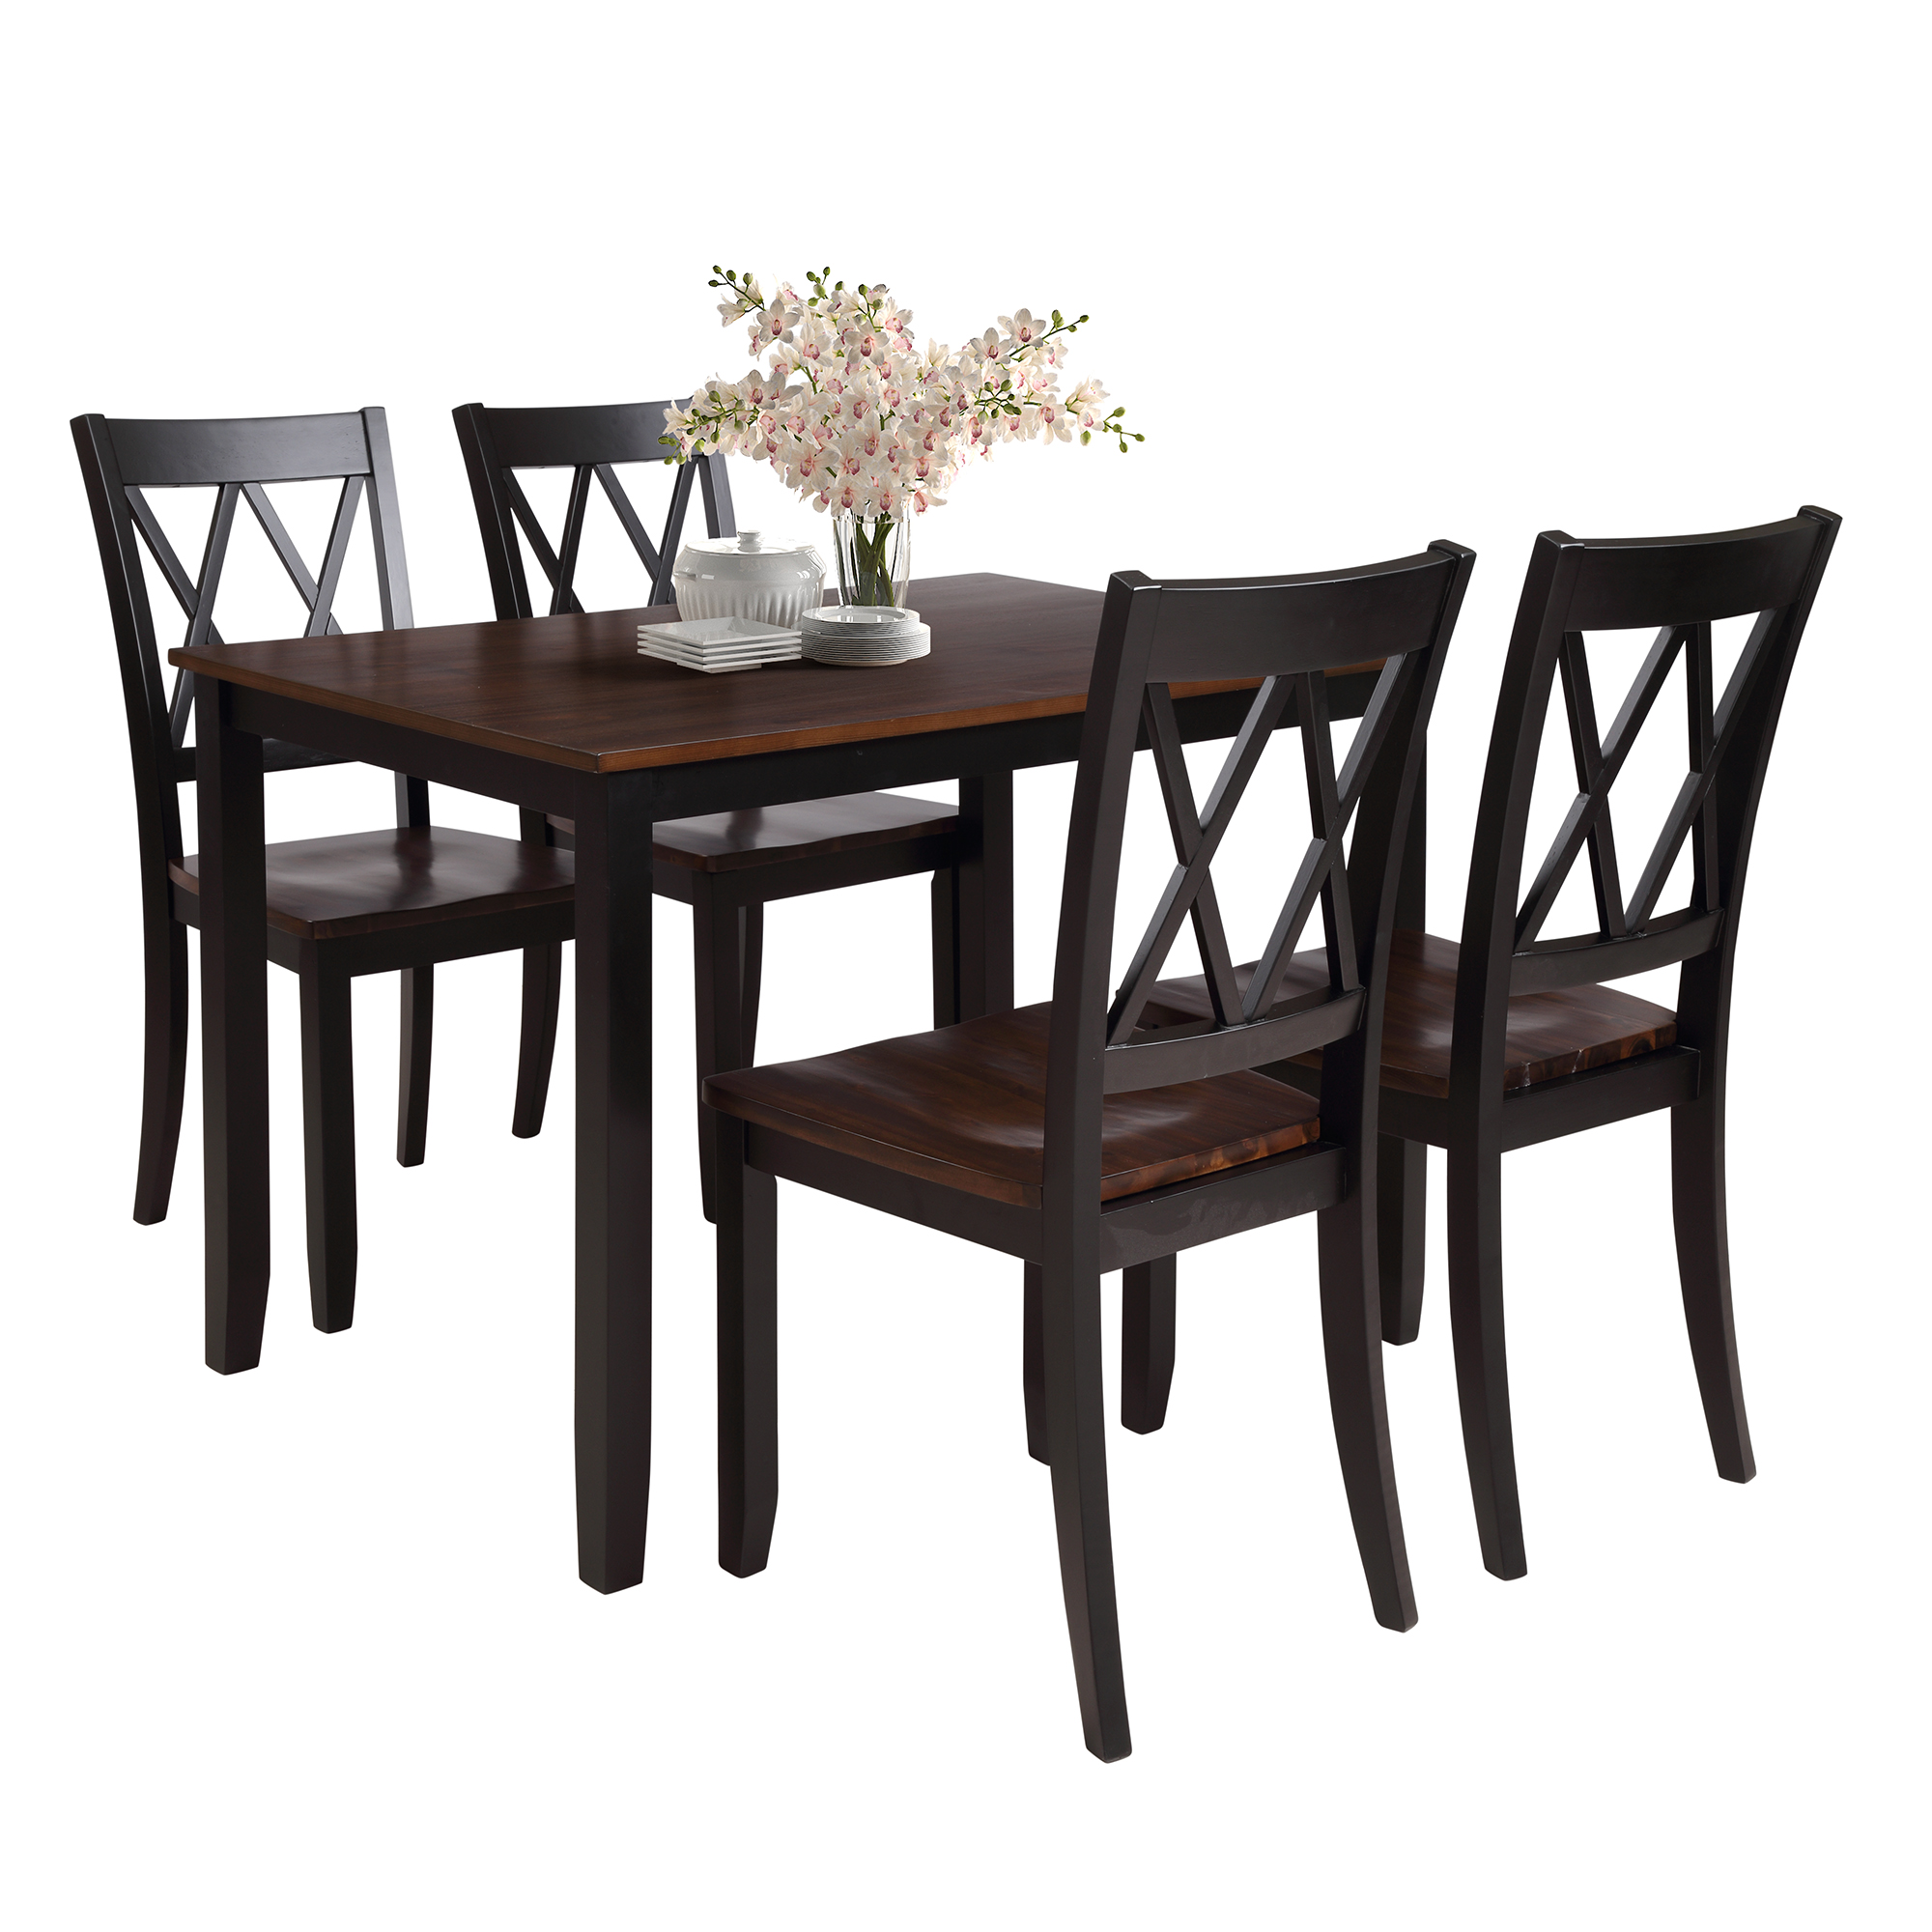 clearance dining table set with 4 chairs 5 piece wooden on dining room sets on clearance id=75129